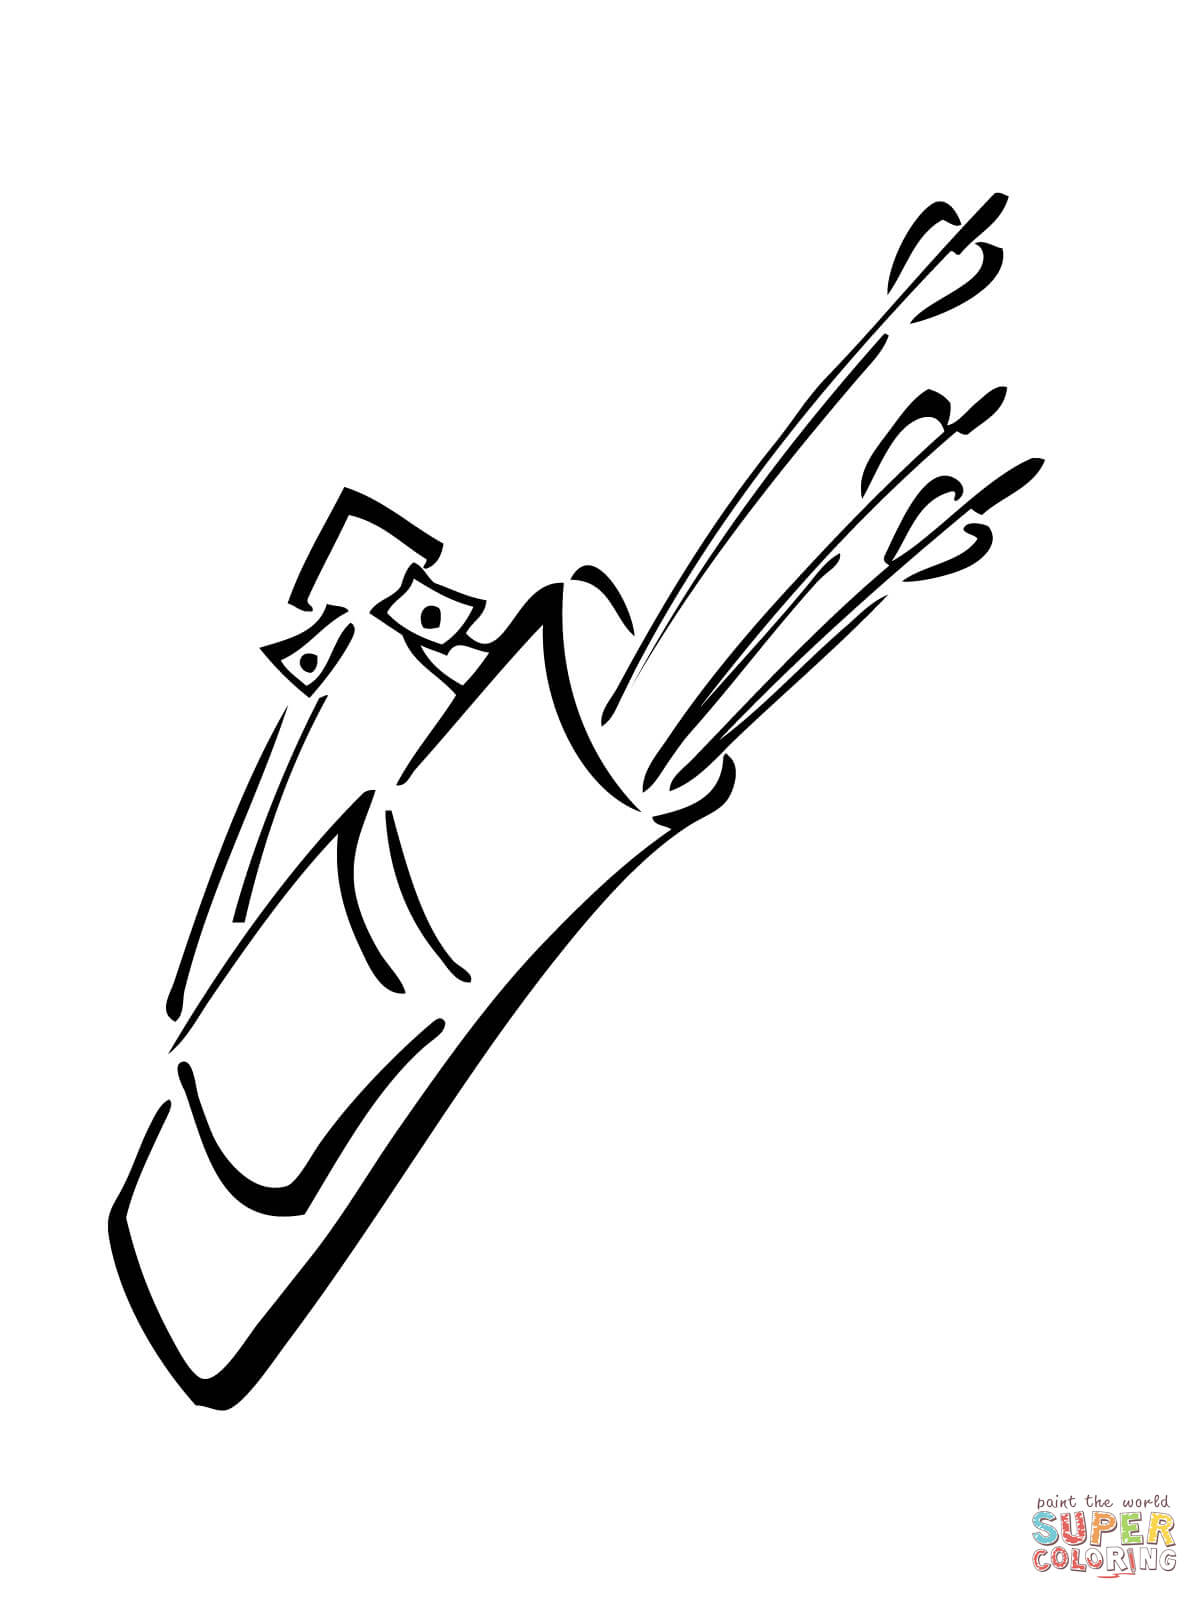 quiver coloring sheets quiver coloring pages quiver with arrows coloring page sheets quiver coloring